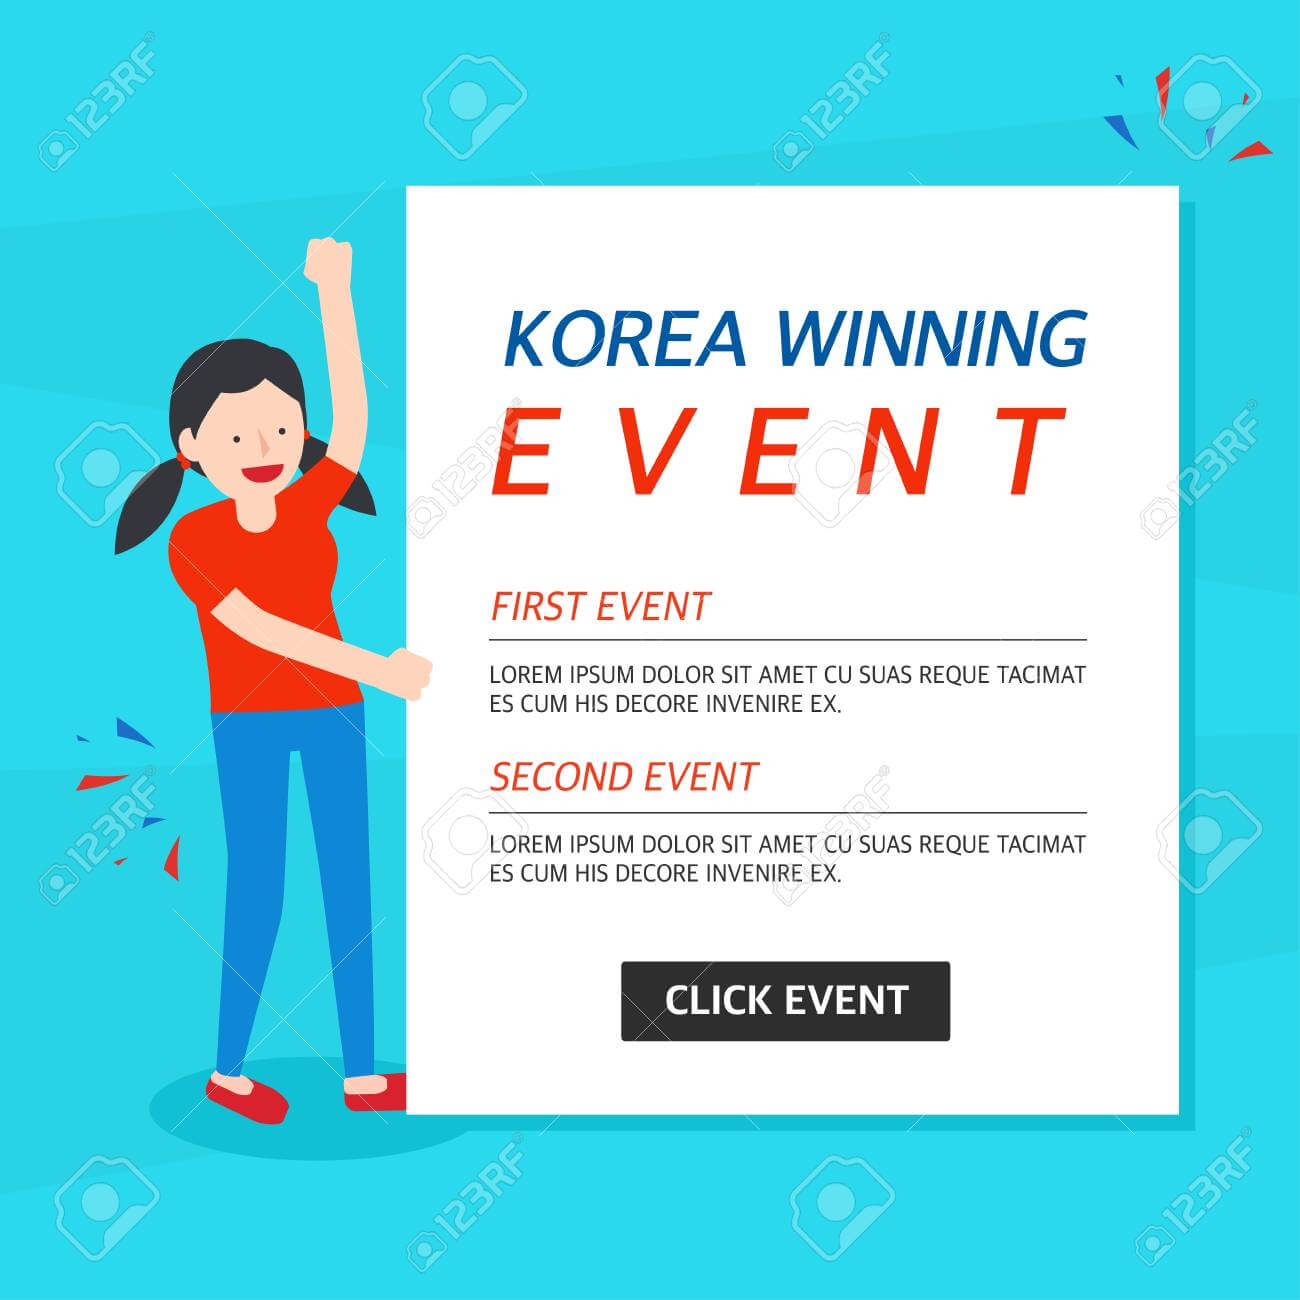 Korea Winning Event Banner Template with regard to Event Banner Template